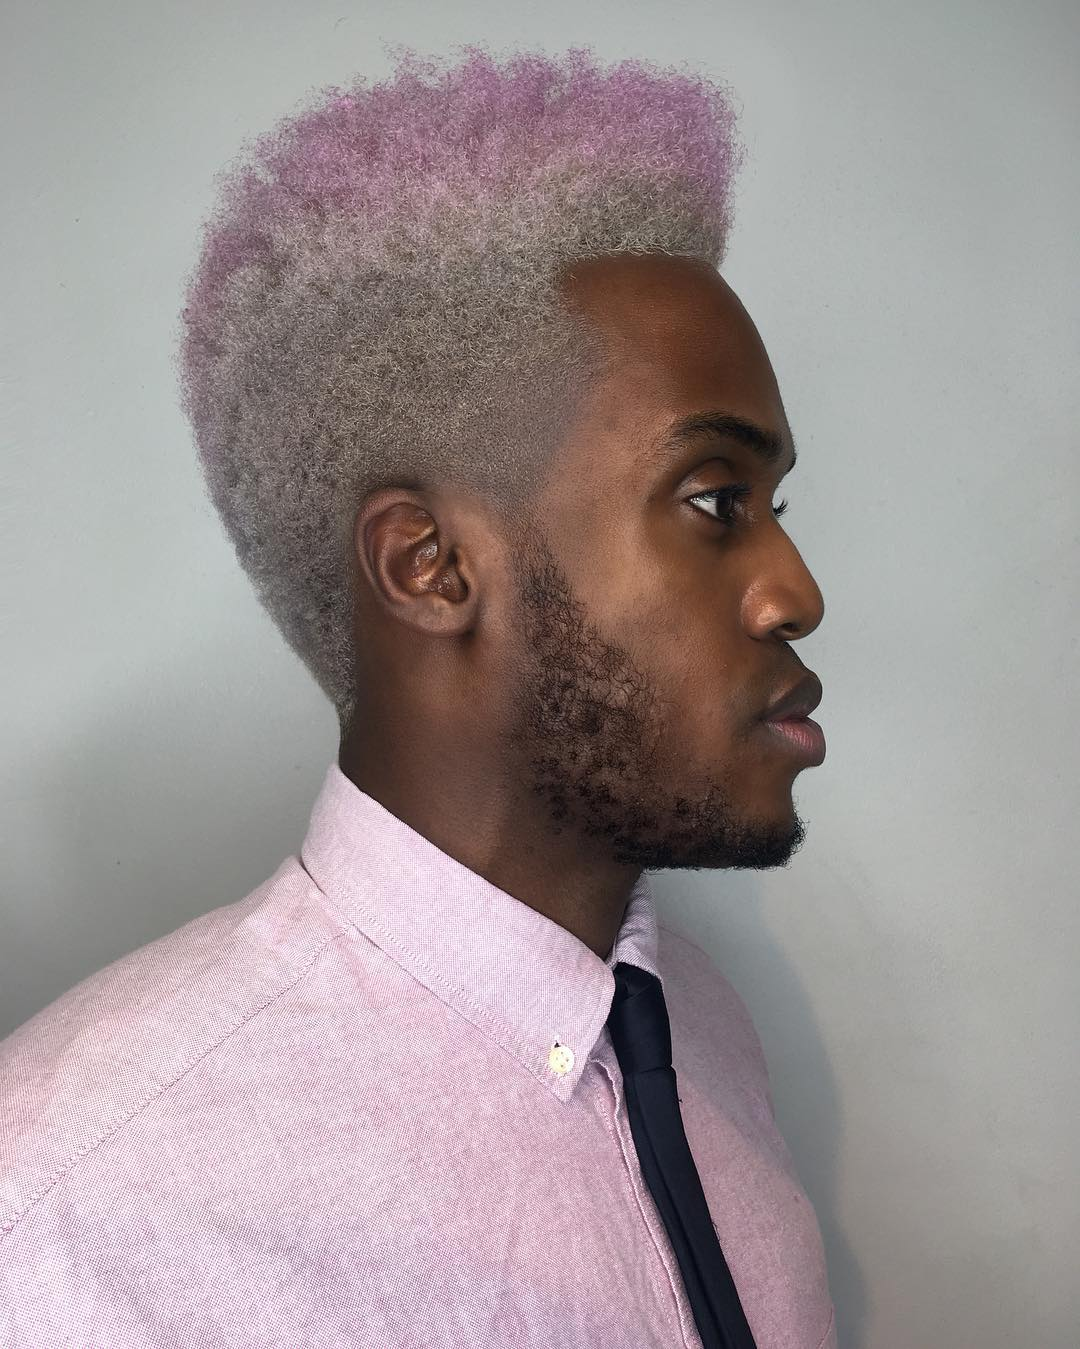 Afro High Top Fade with Silver to Pink Ombre Hair Color Fall Hairstyle